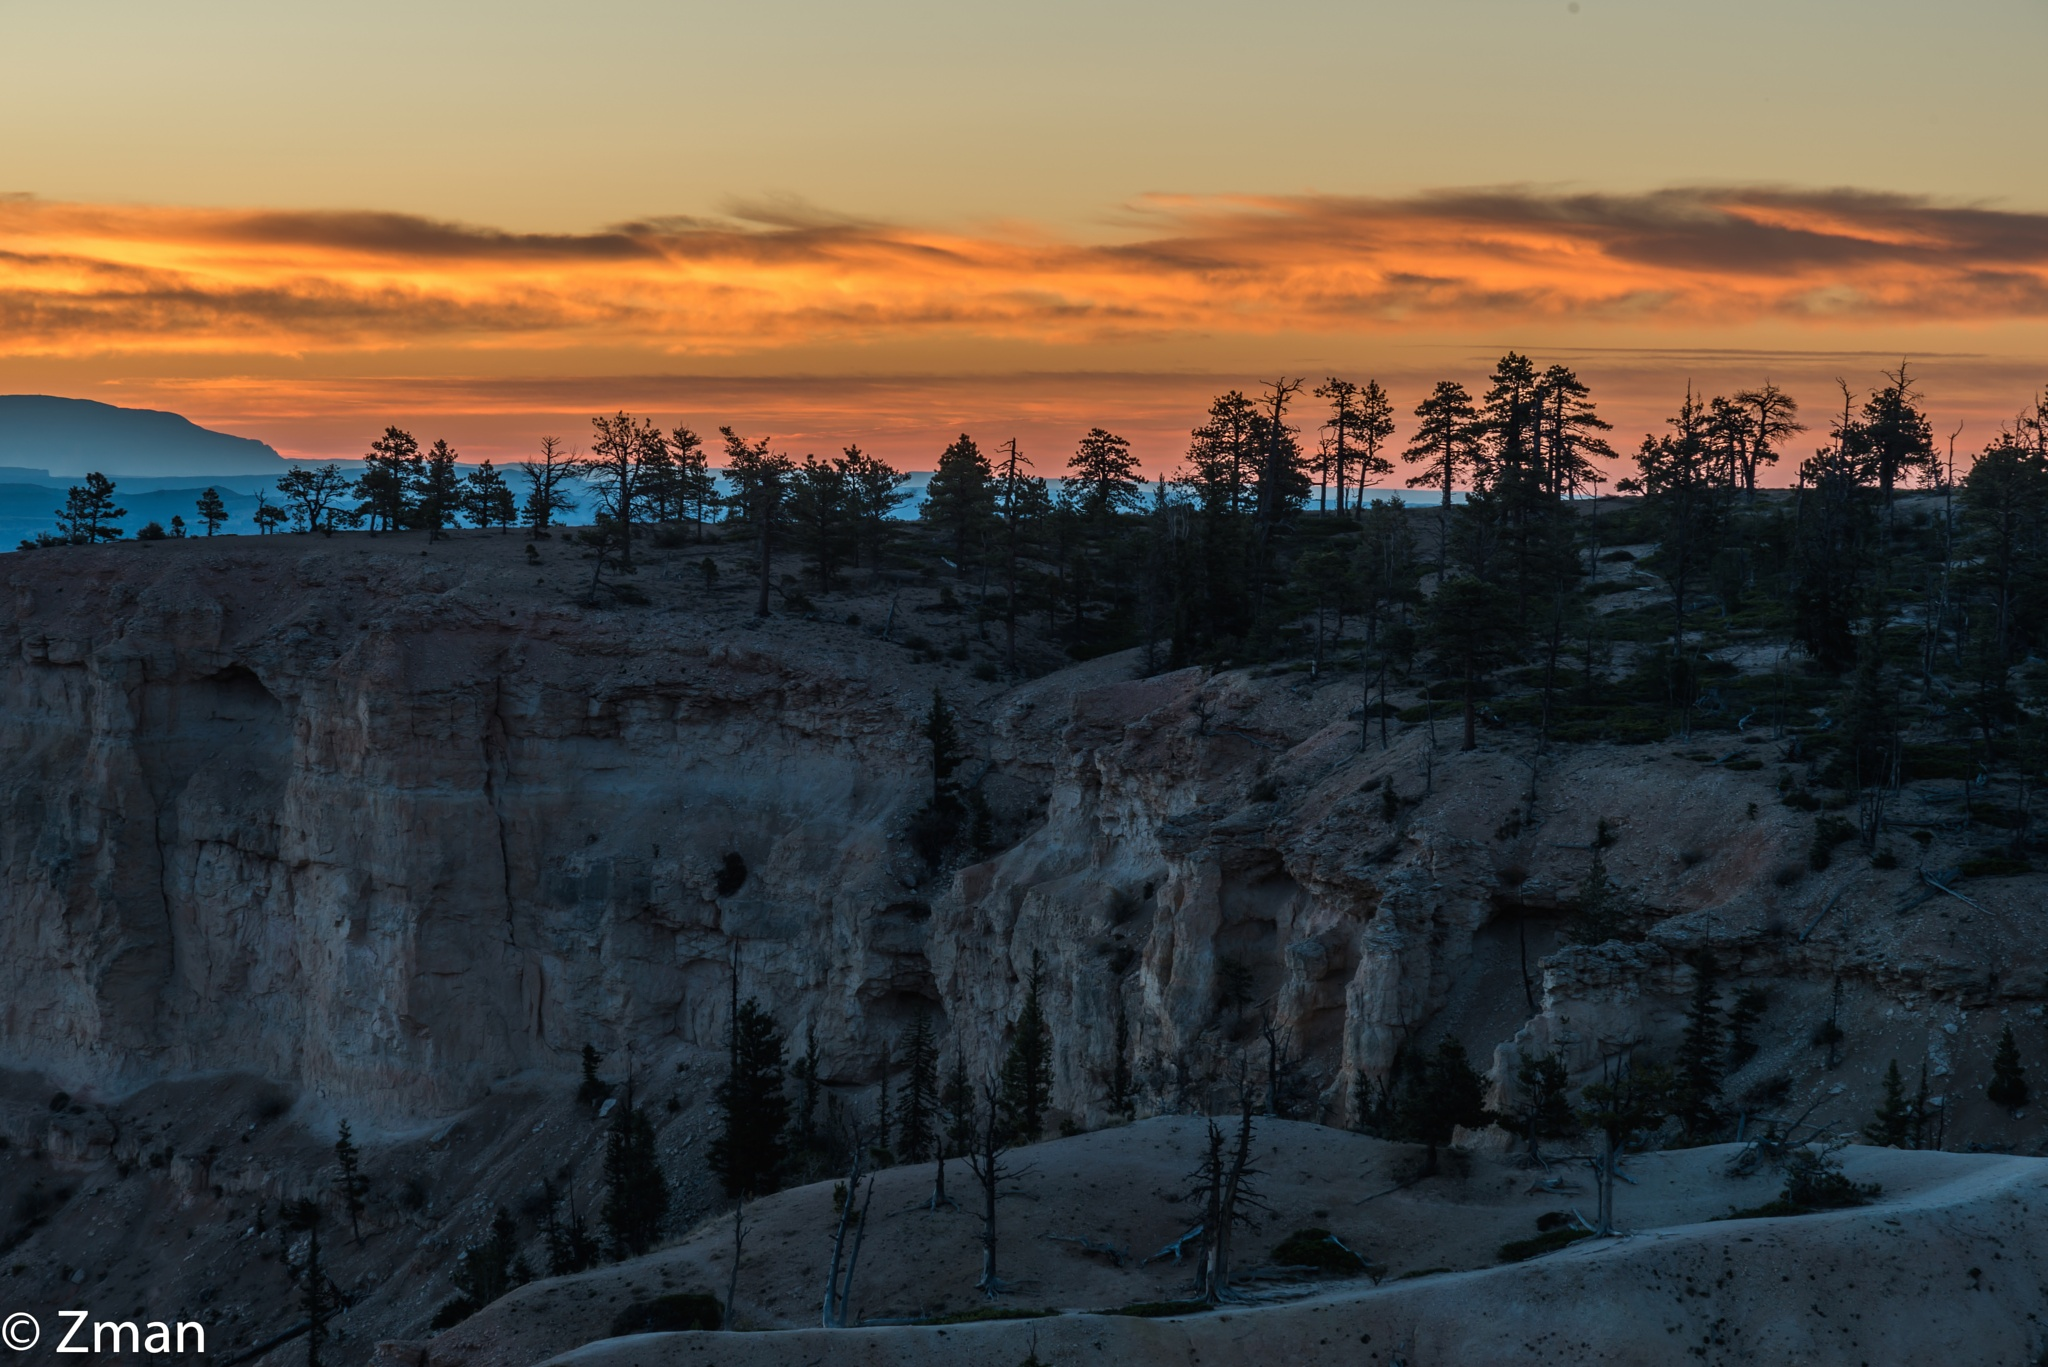 Sunset at Bryce National Park by muhammad.nasser.963